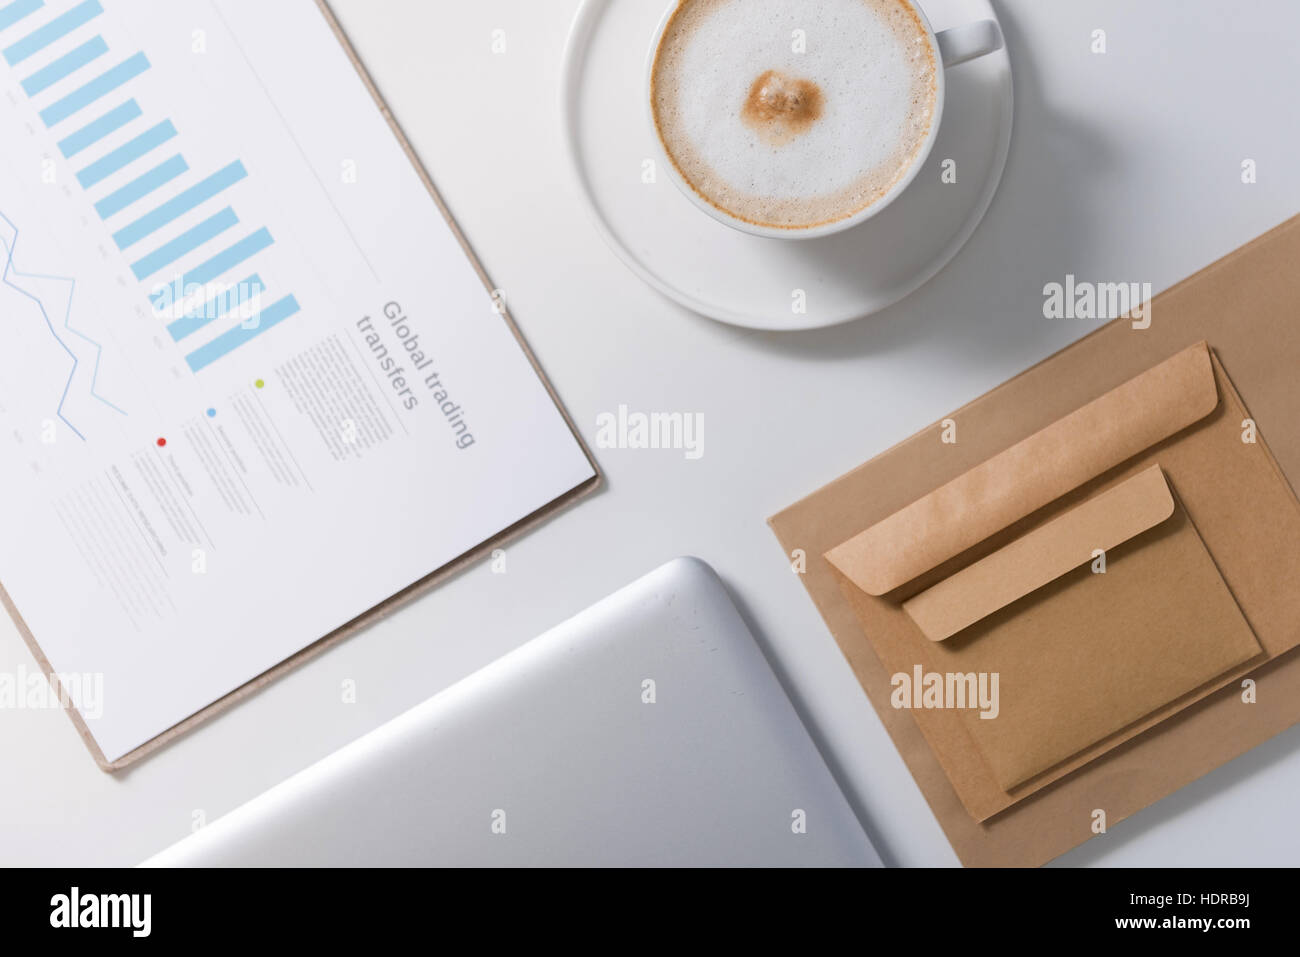 Statistical data documents lying on the table - Stock Image